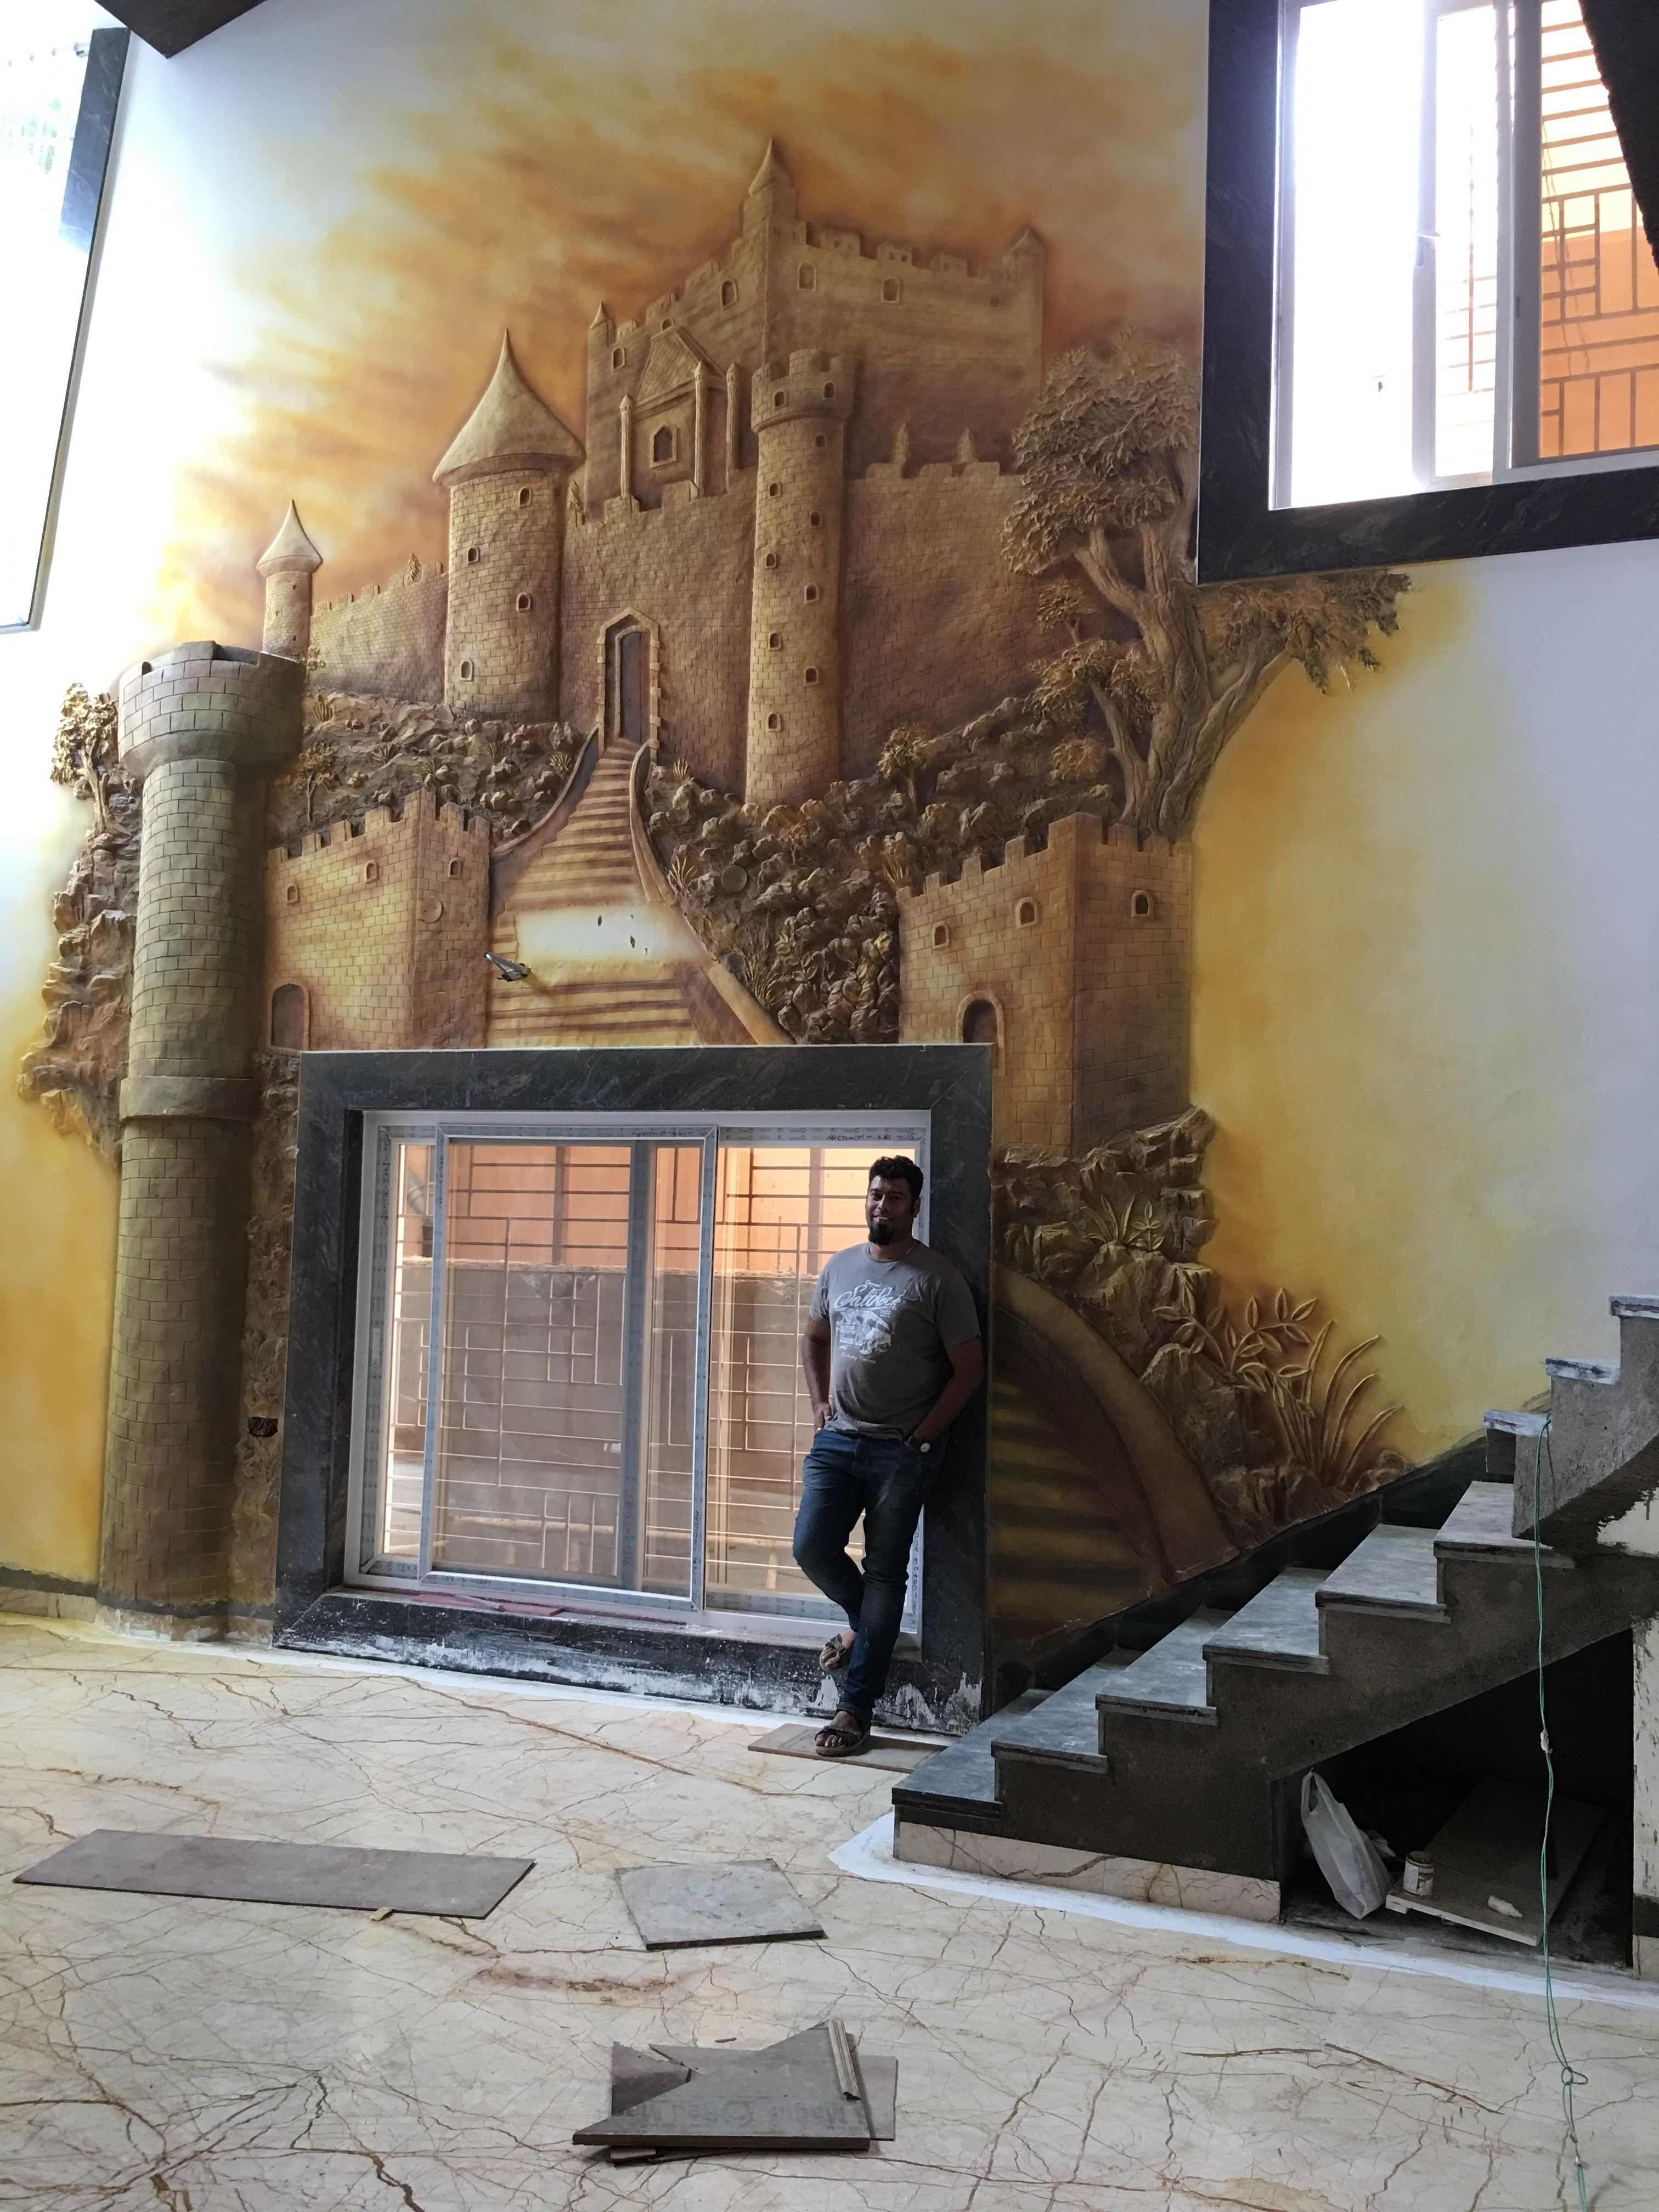 Drywall mural in drawings hall of a bangalow Mural Wall murals 3024x4032